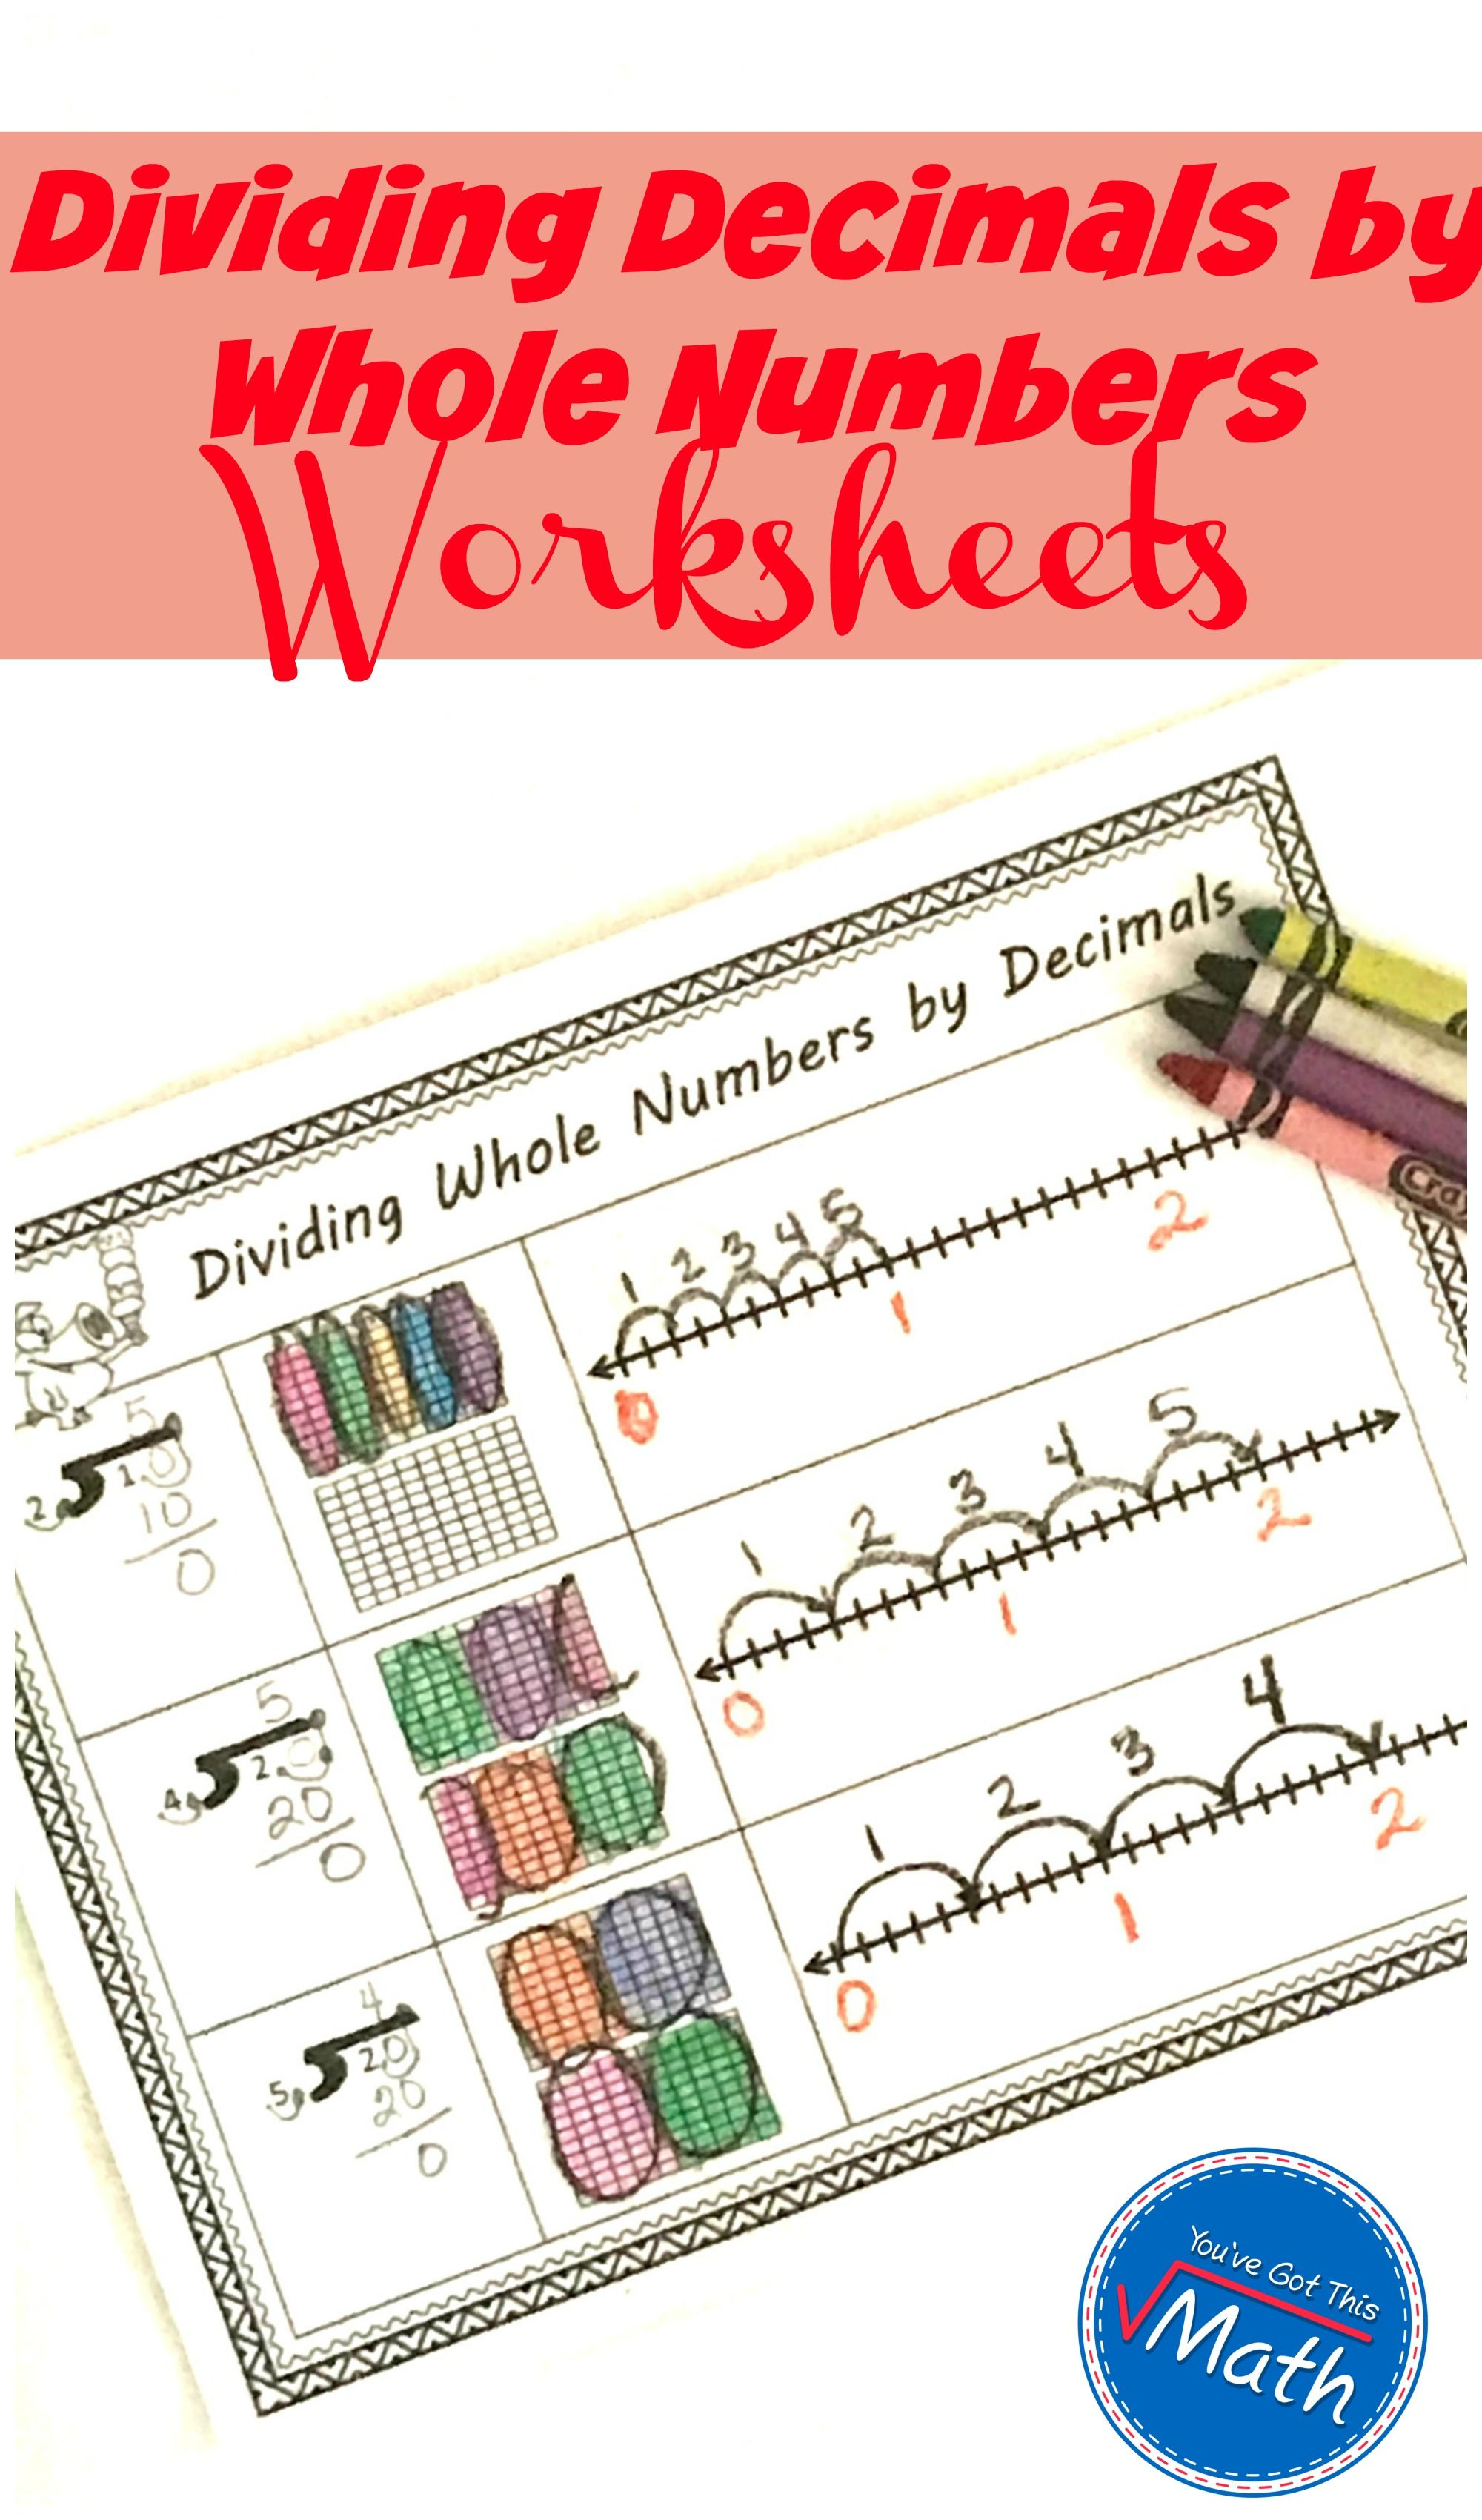 10 Dividing Decimals By Whole Numbers Worksheet